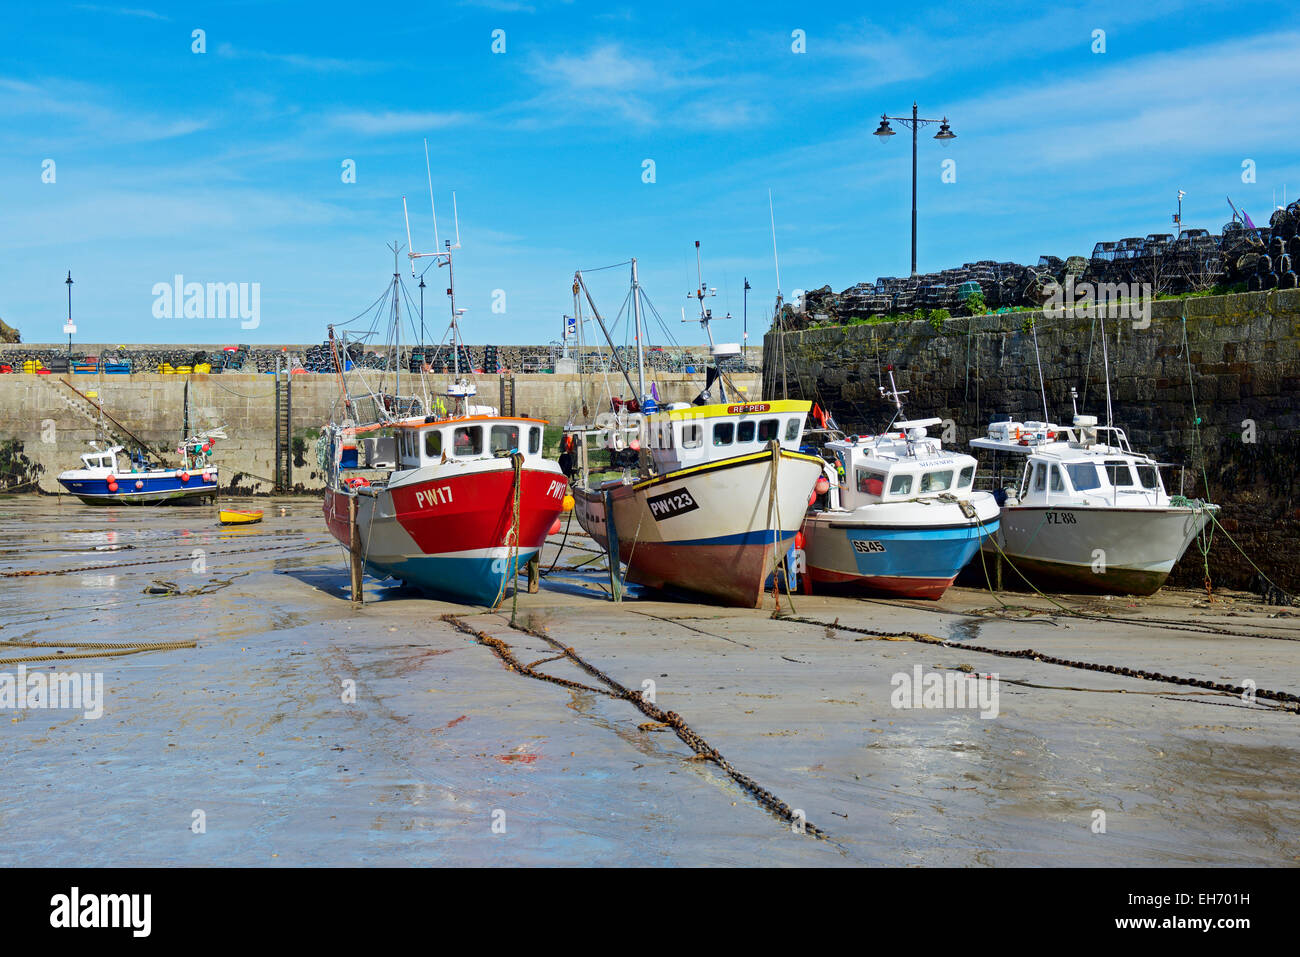 Fishing boats in harbour, Newquay, Cornwall, England UK - Stock Image